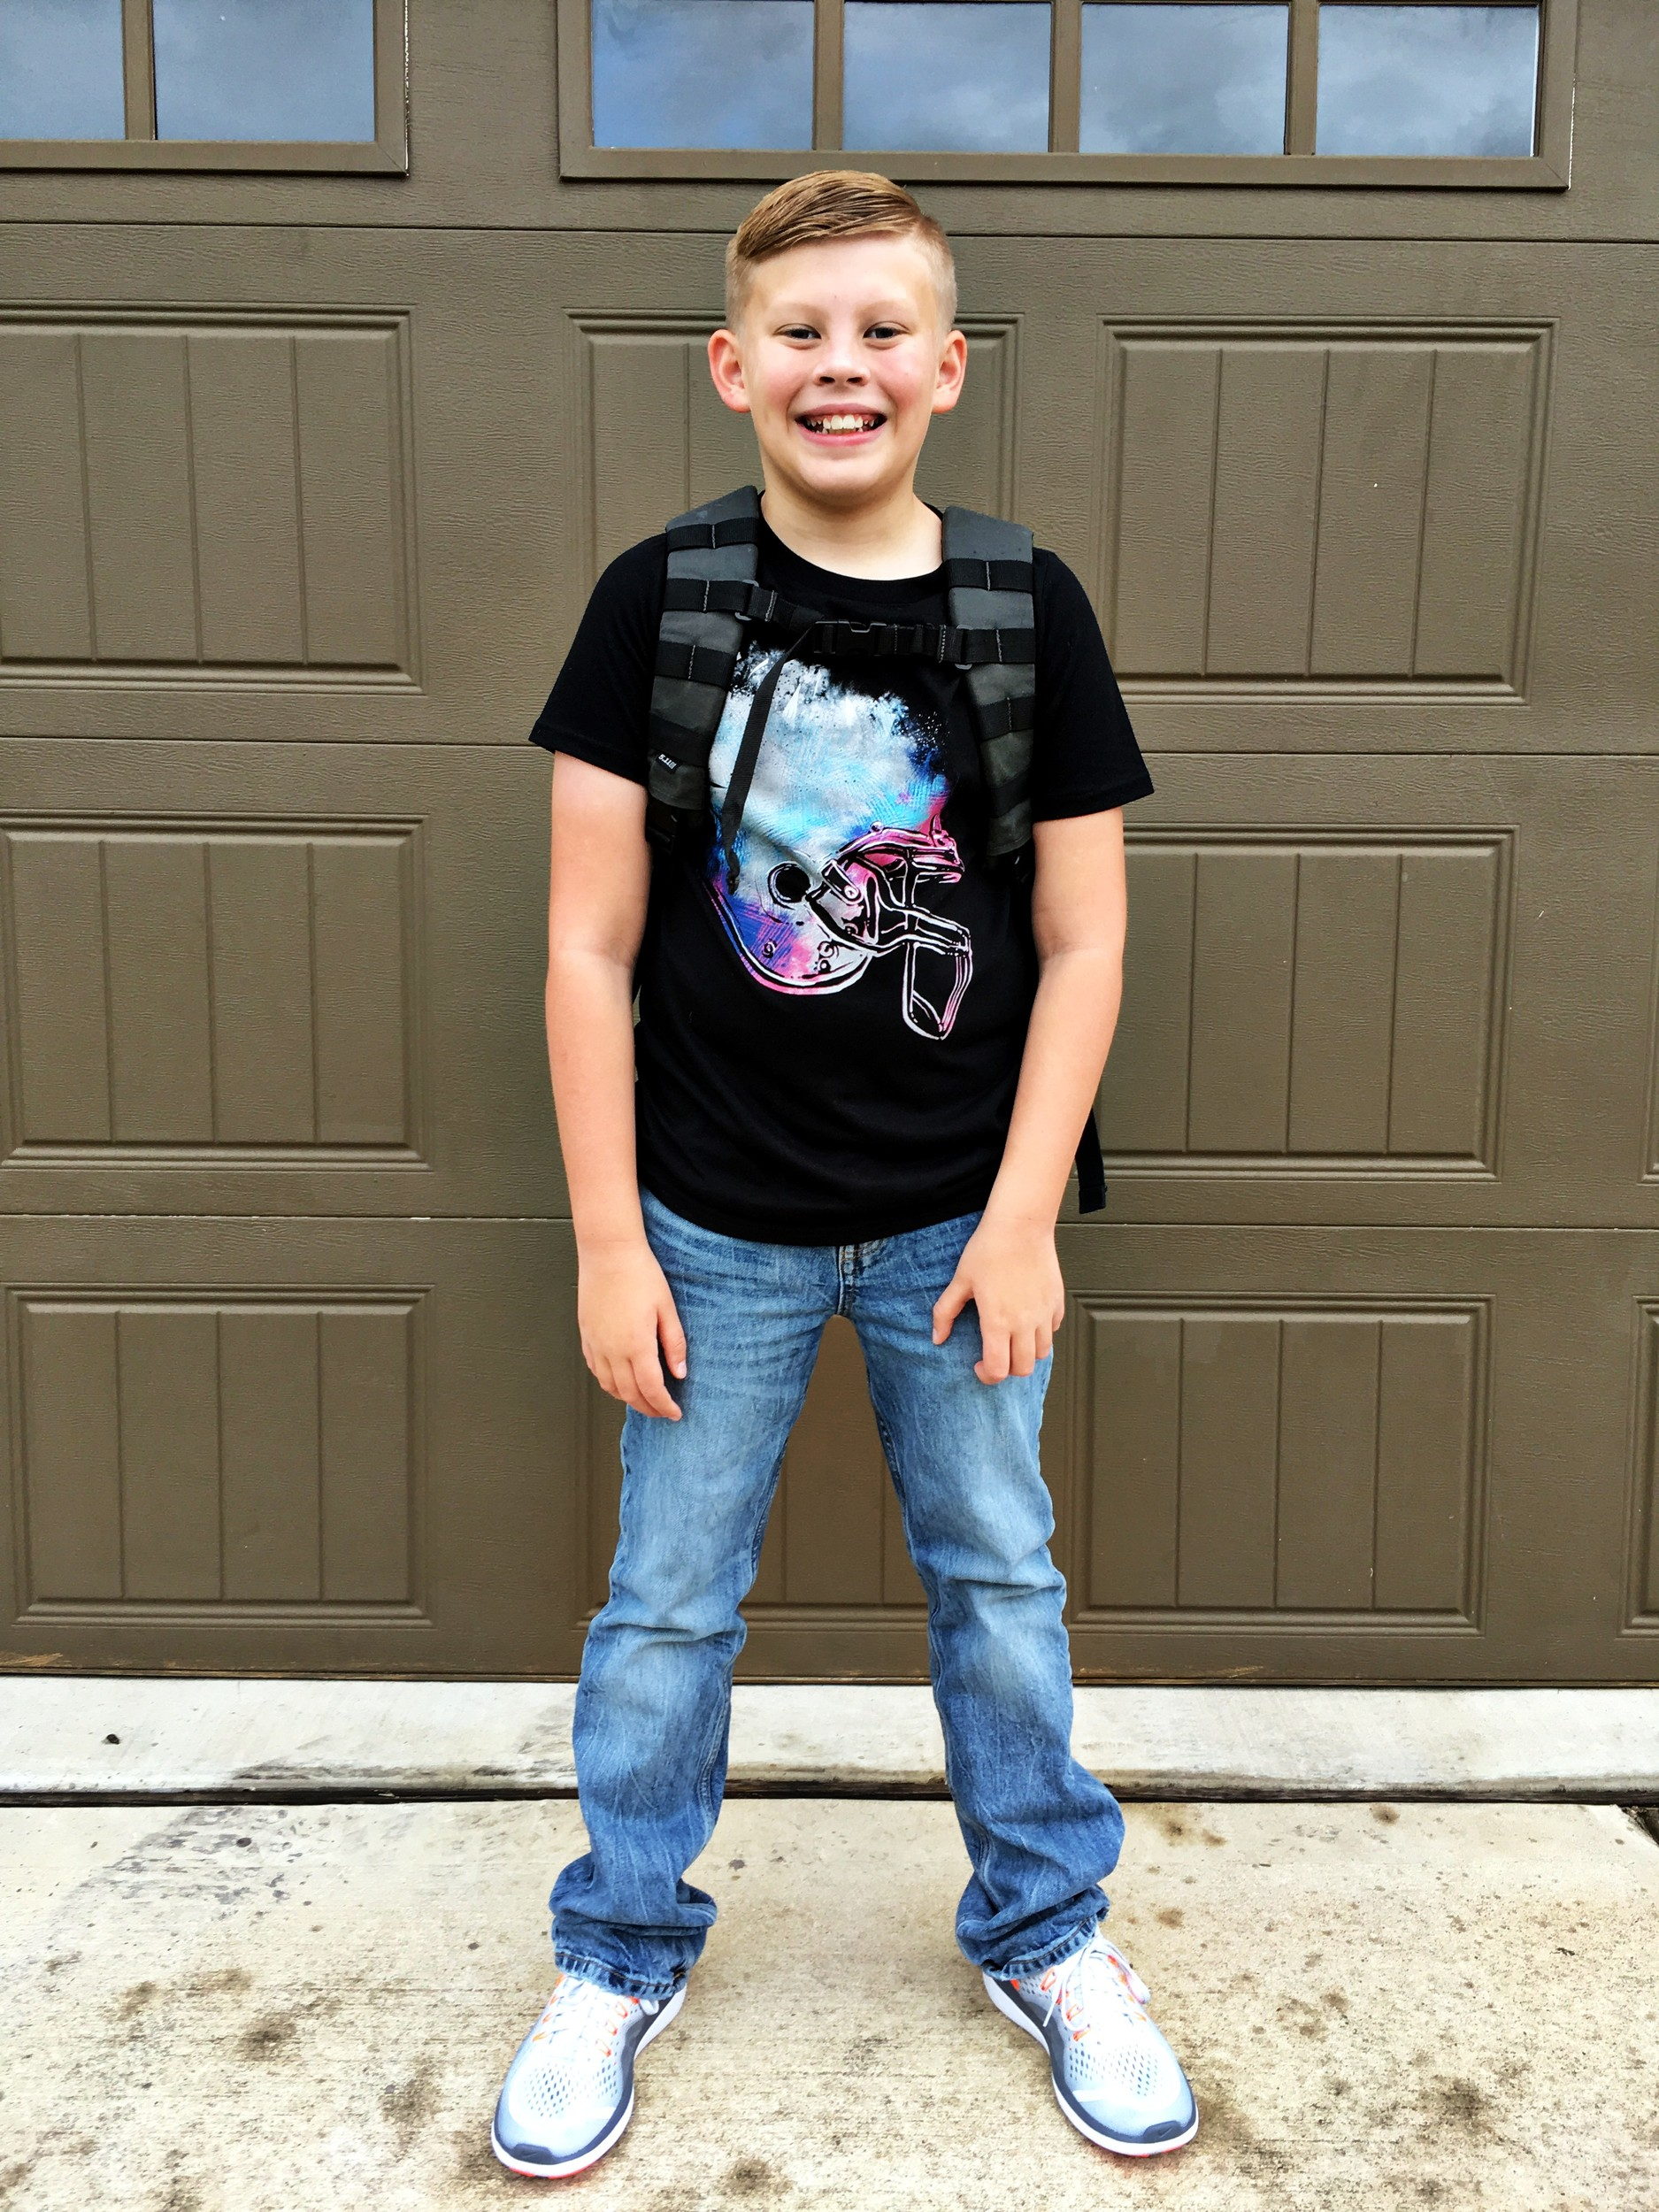 Bryson Sherman, 11, 6th grade at Stiles Middle School